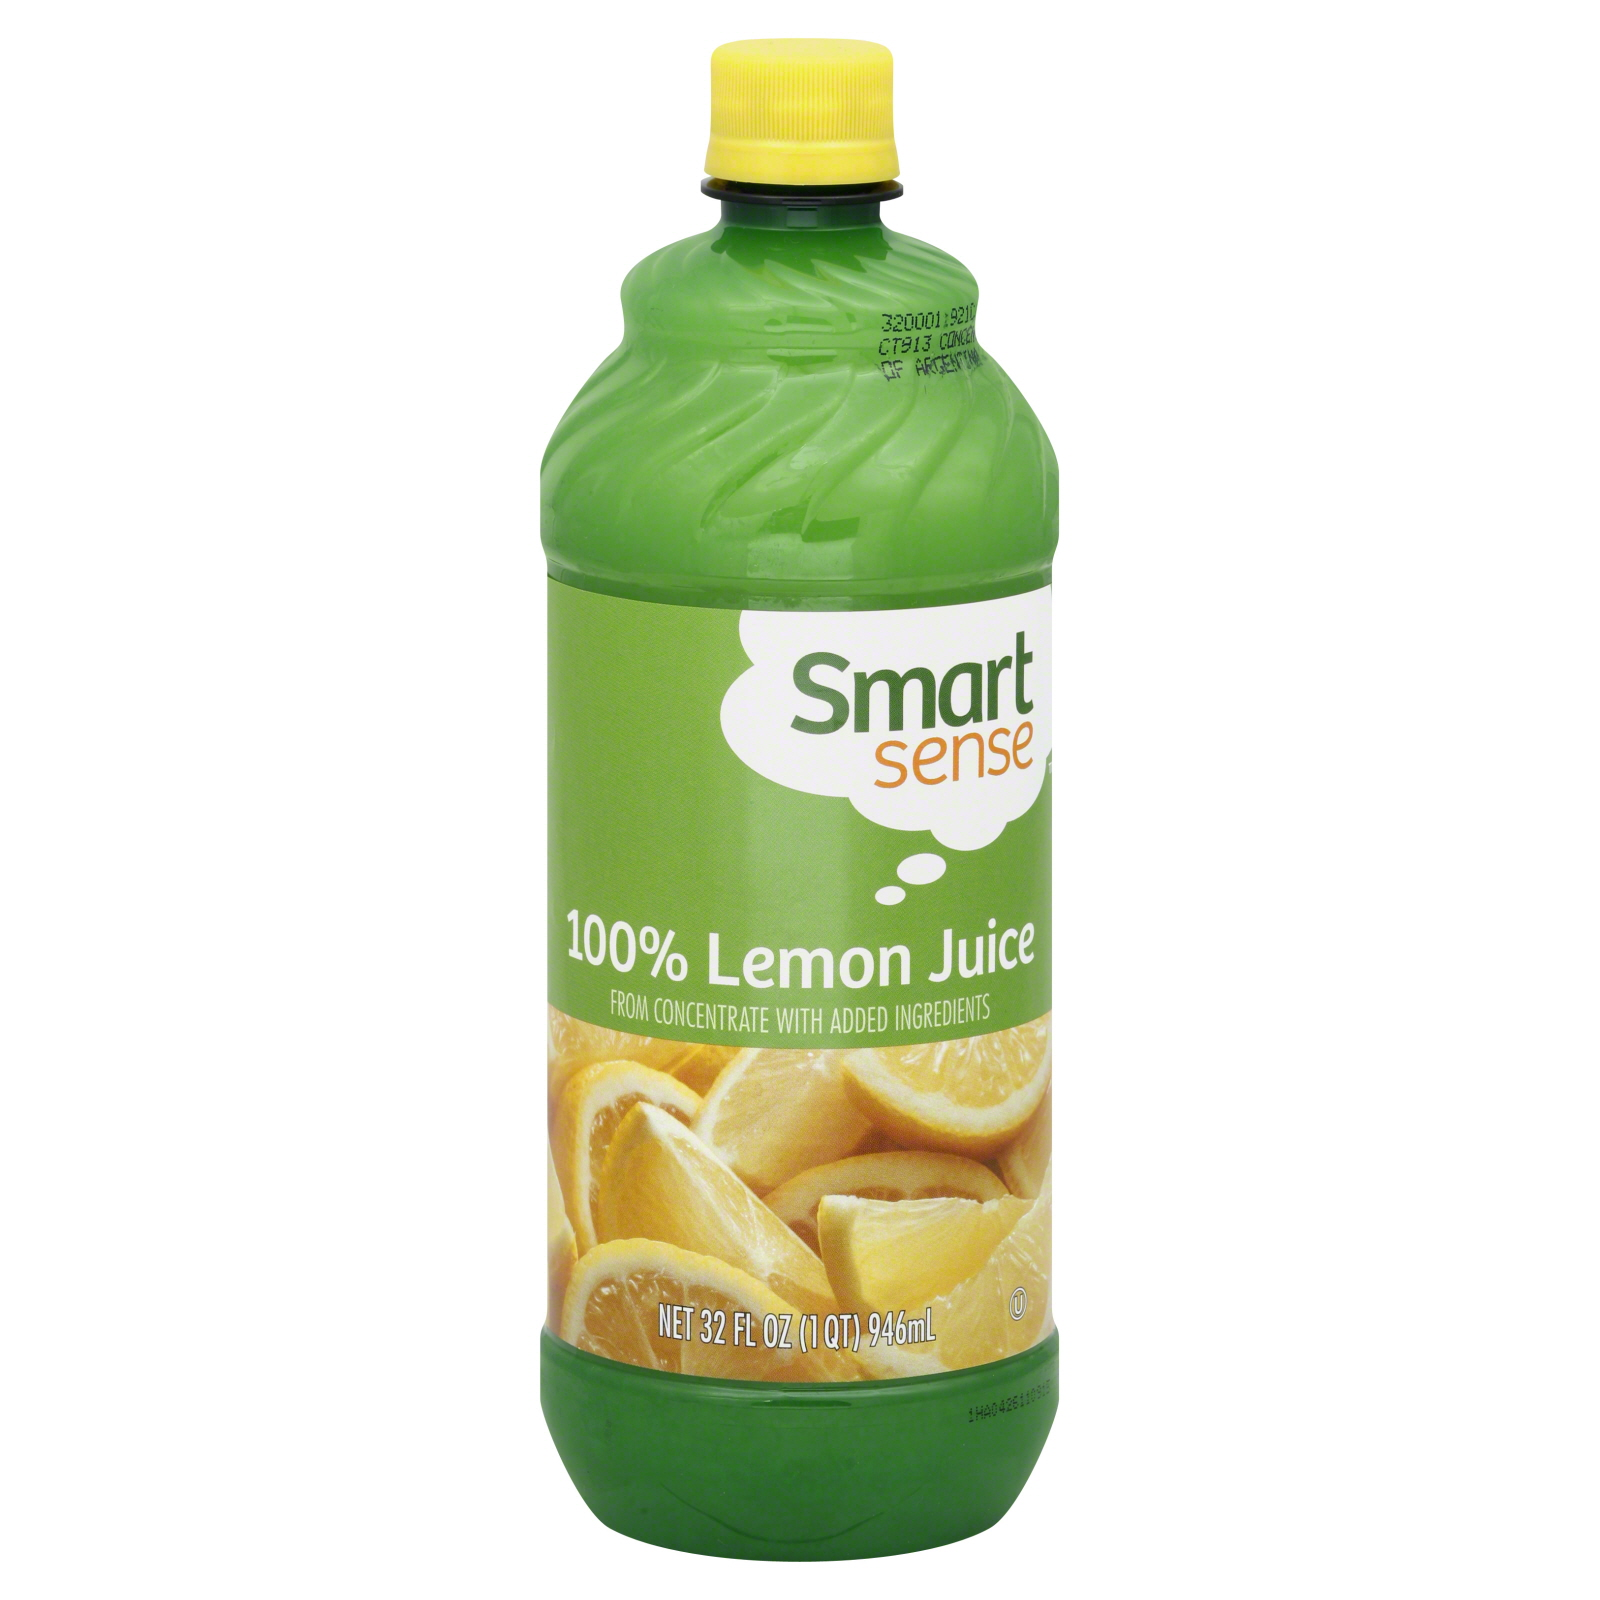 Best Way Juice Lemon Smart Sense Lemon Juice 100 32 Oz 1 Qt 946 Ml Shop